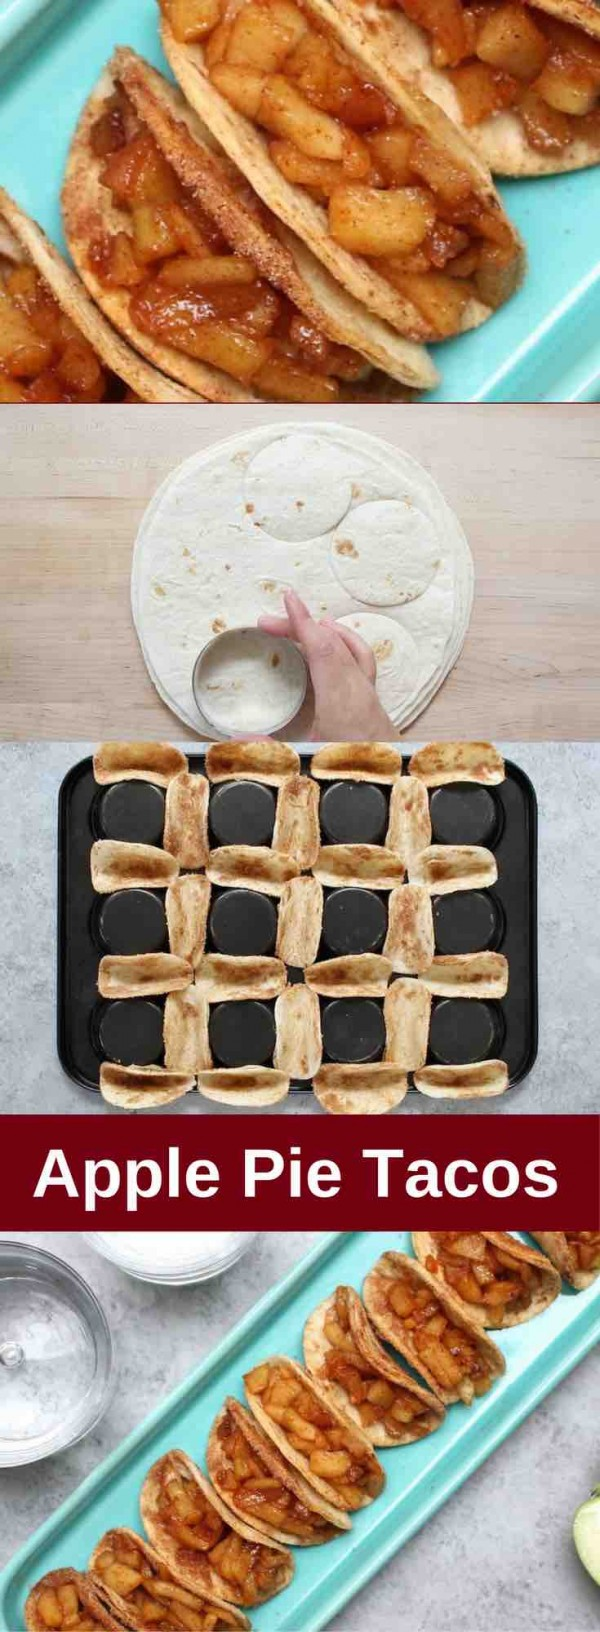 Get the recipe Apple Pie Tacos @recipes_to_go